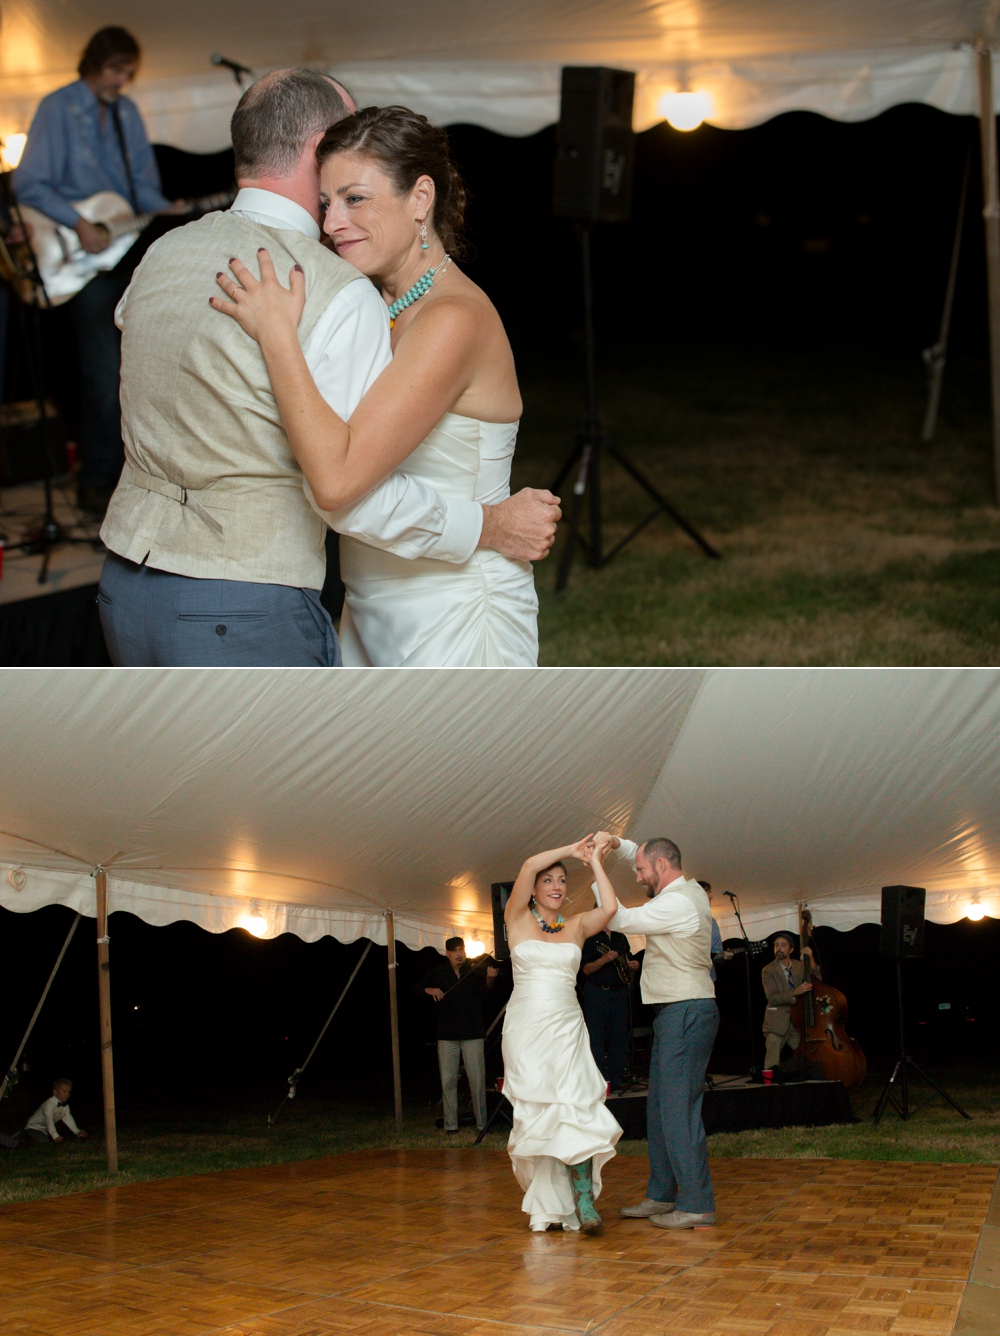 BearSpotFarm_Wedding_Nikki&Alex_0019.jpg